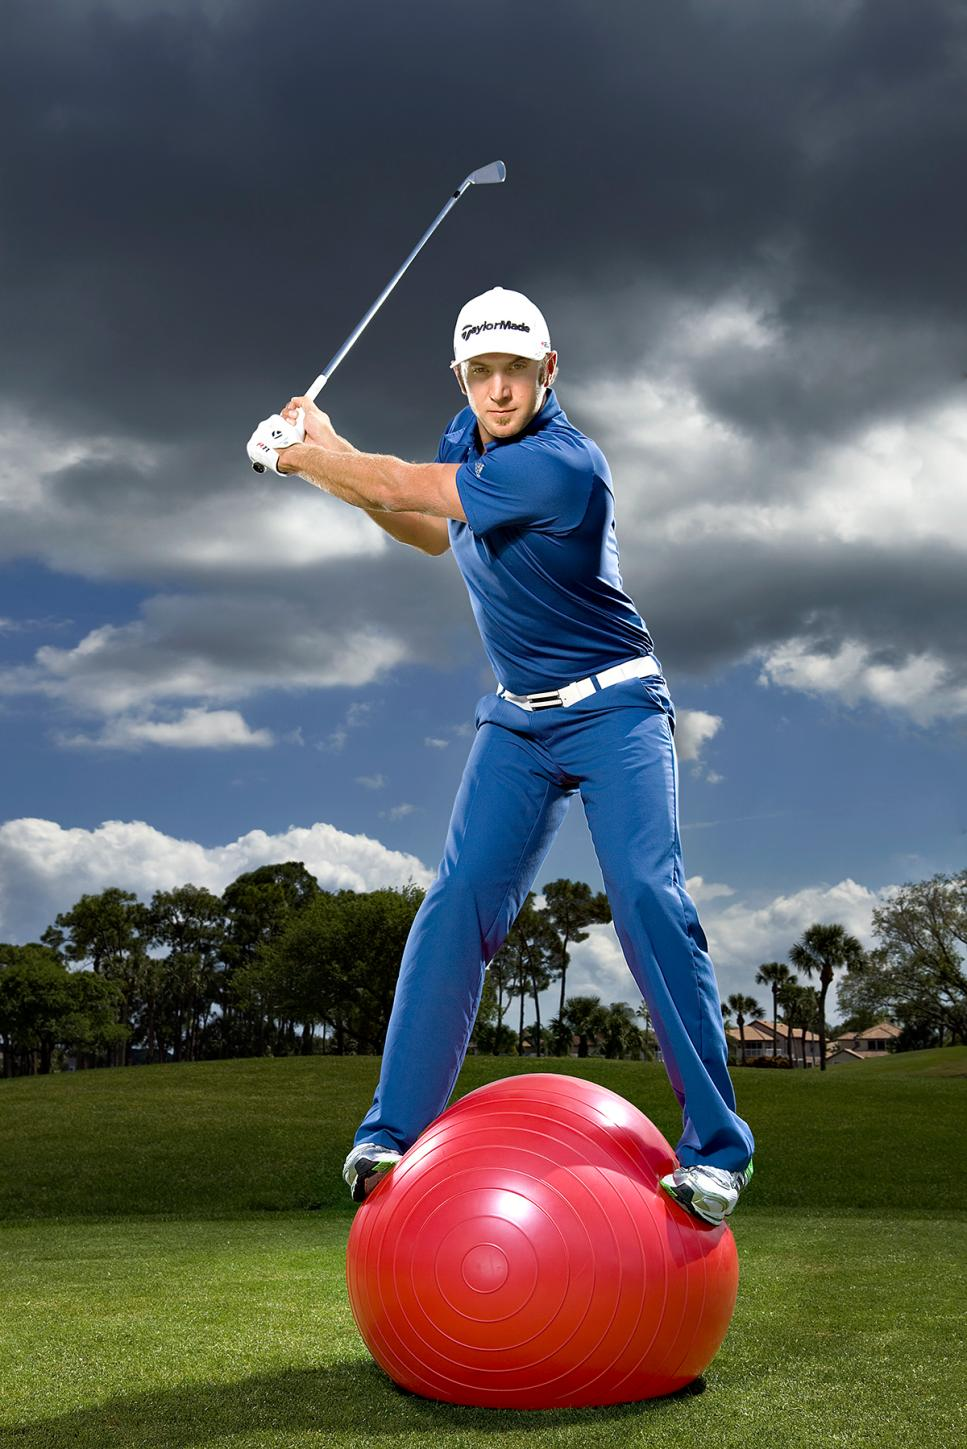 Dustin Johnson standing on stability ball